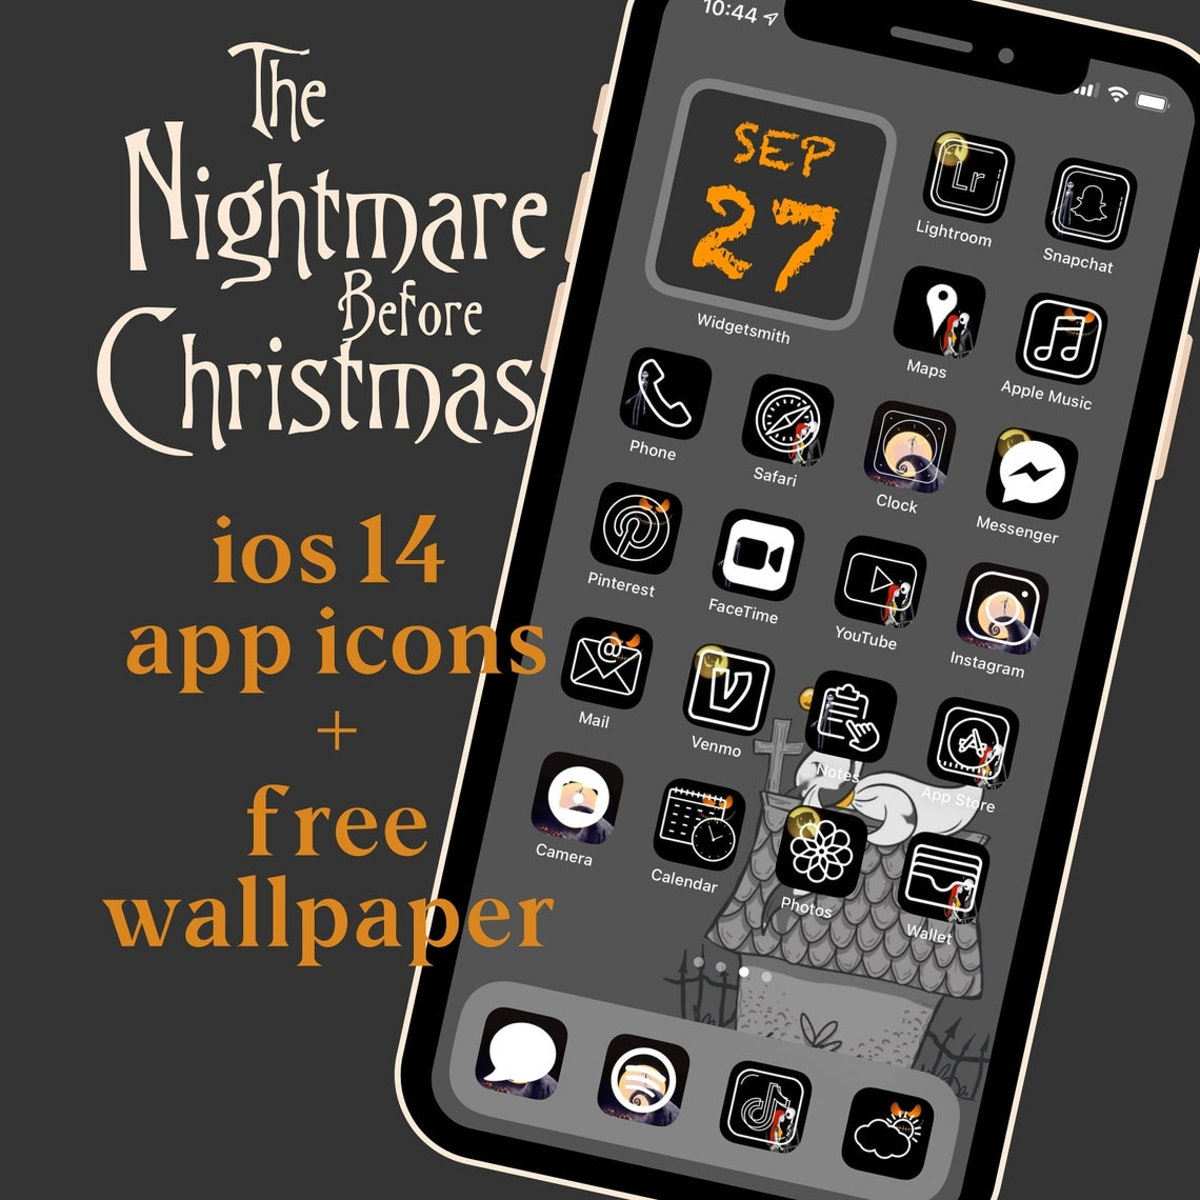 The Nightmare Before Christmas Halloween iOS 14 App Icon Covers + FREE MATCHING WALLPAPER